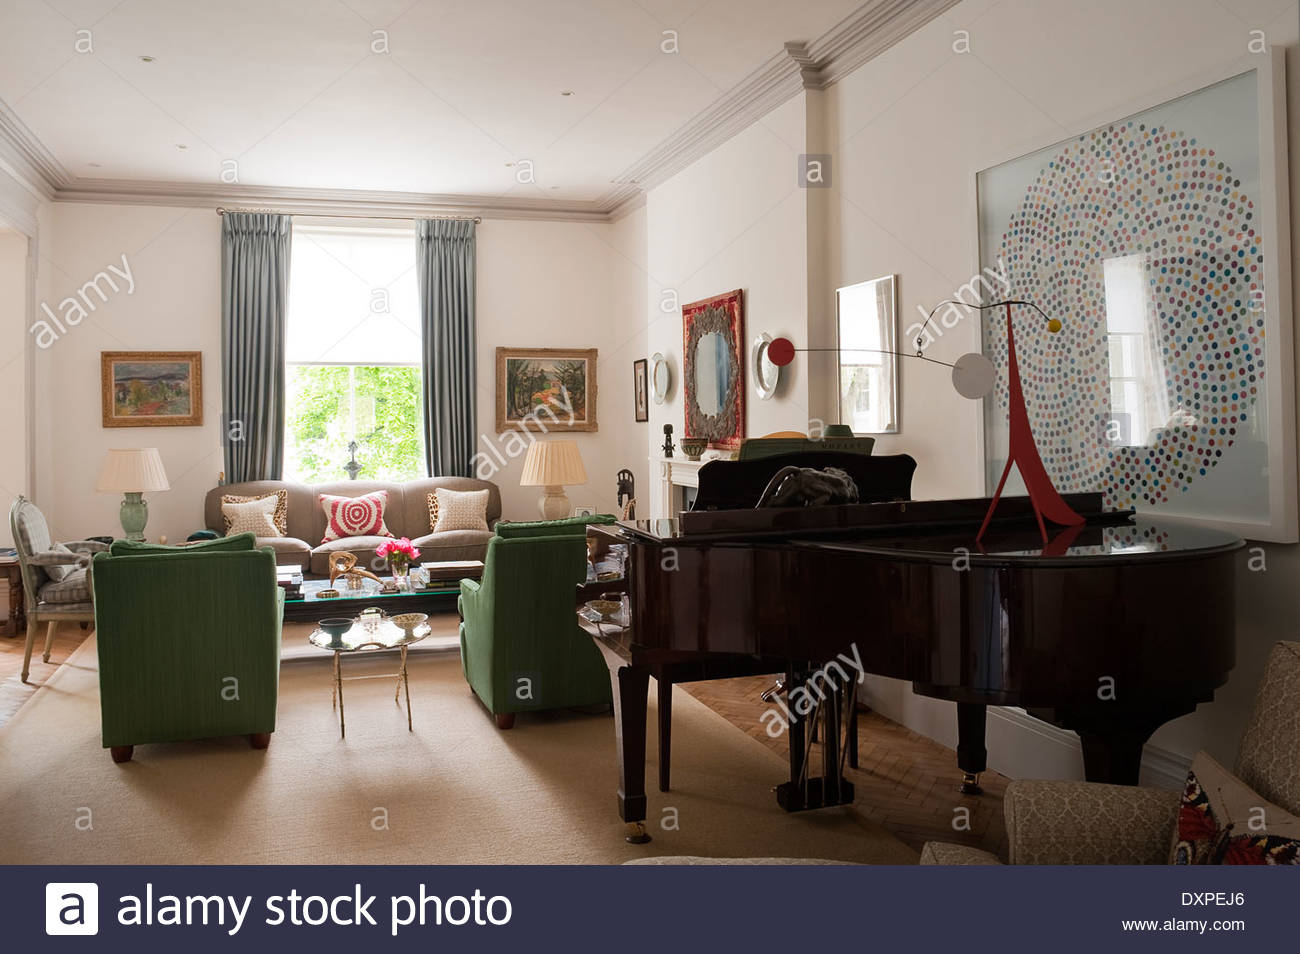 Baby grand piano in living room with damien hirst print for Baby grand piano in living room